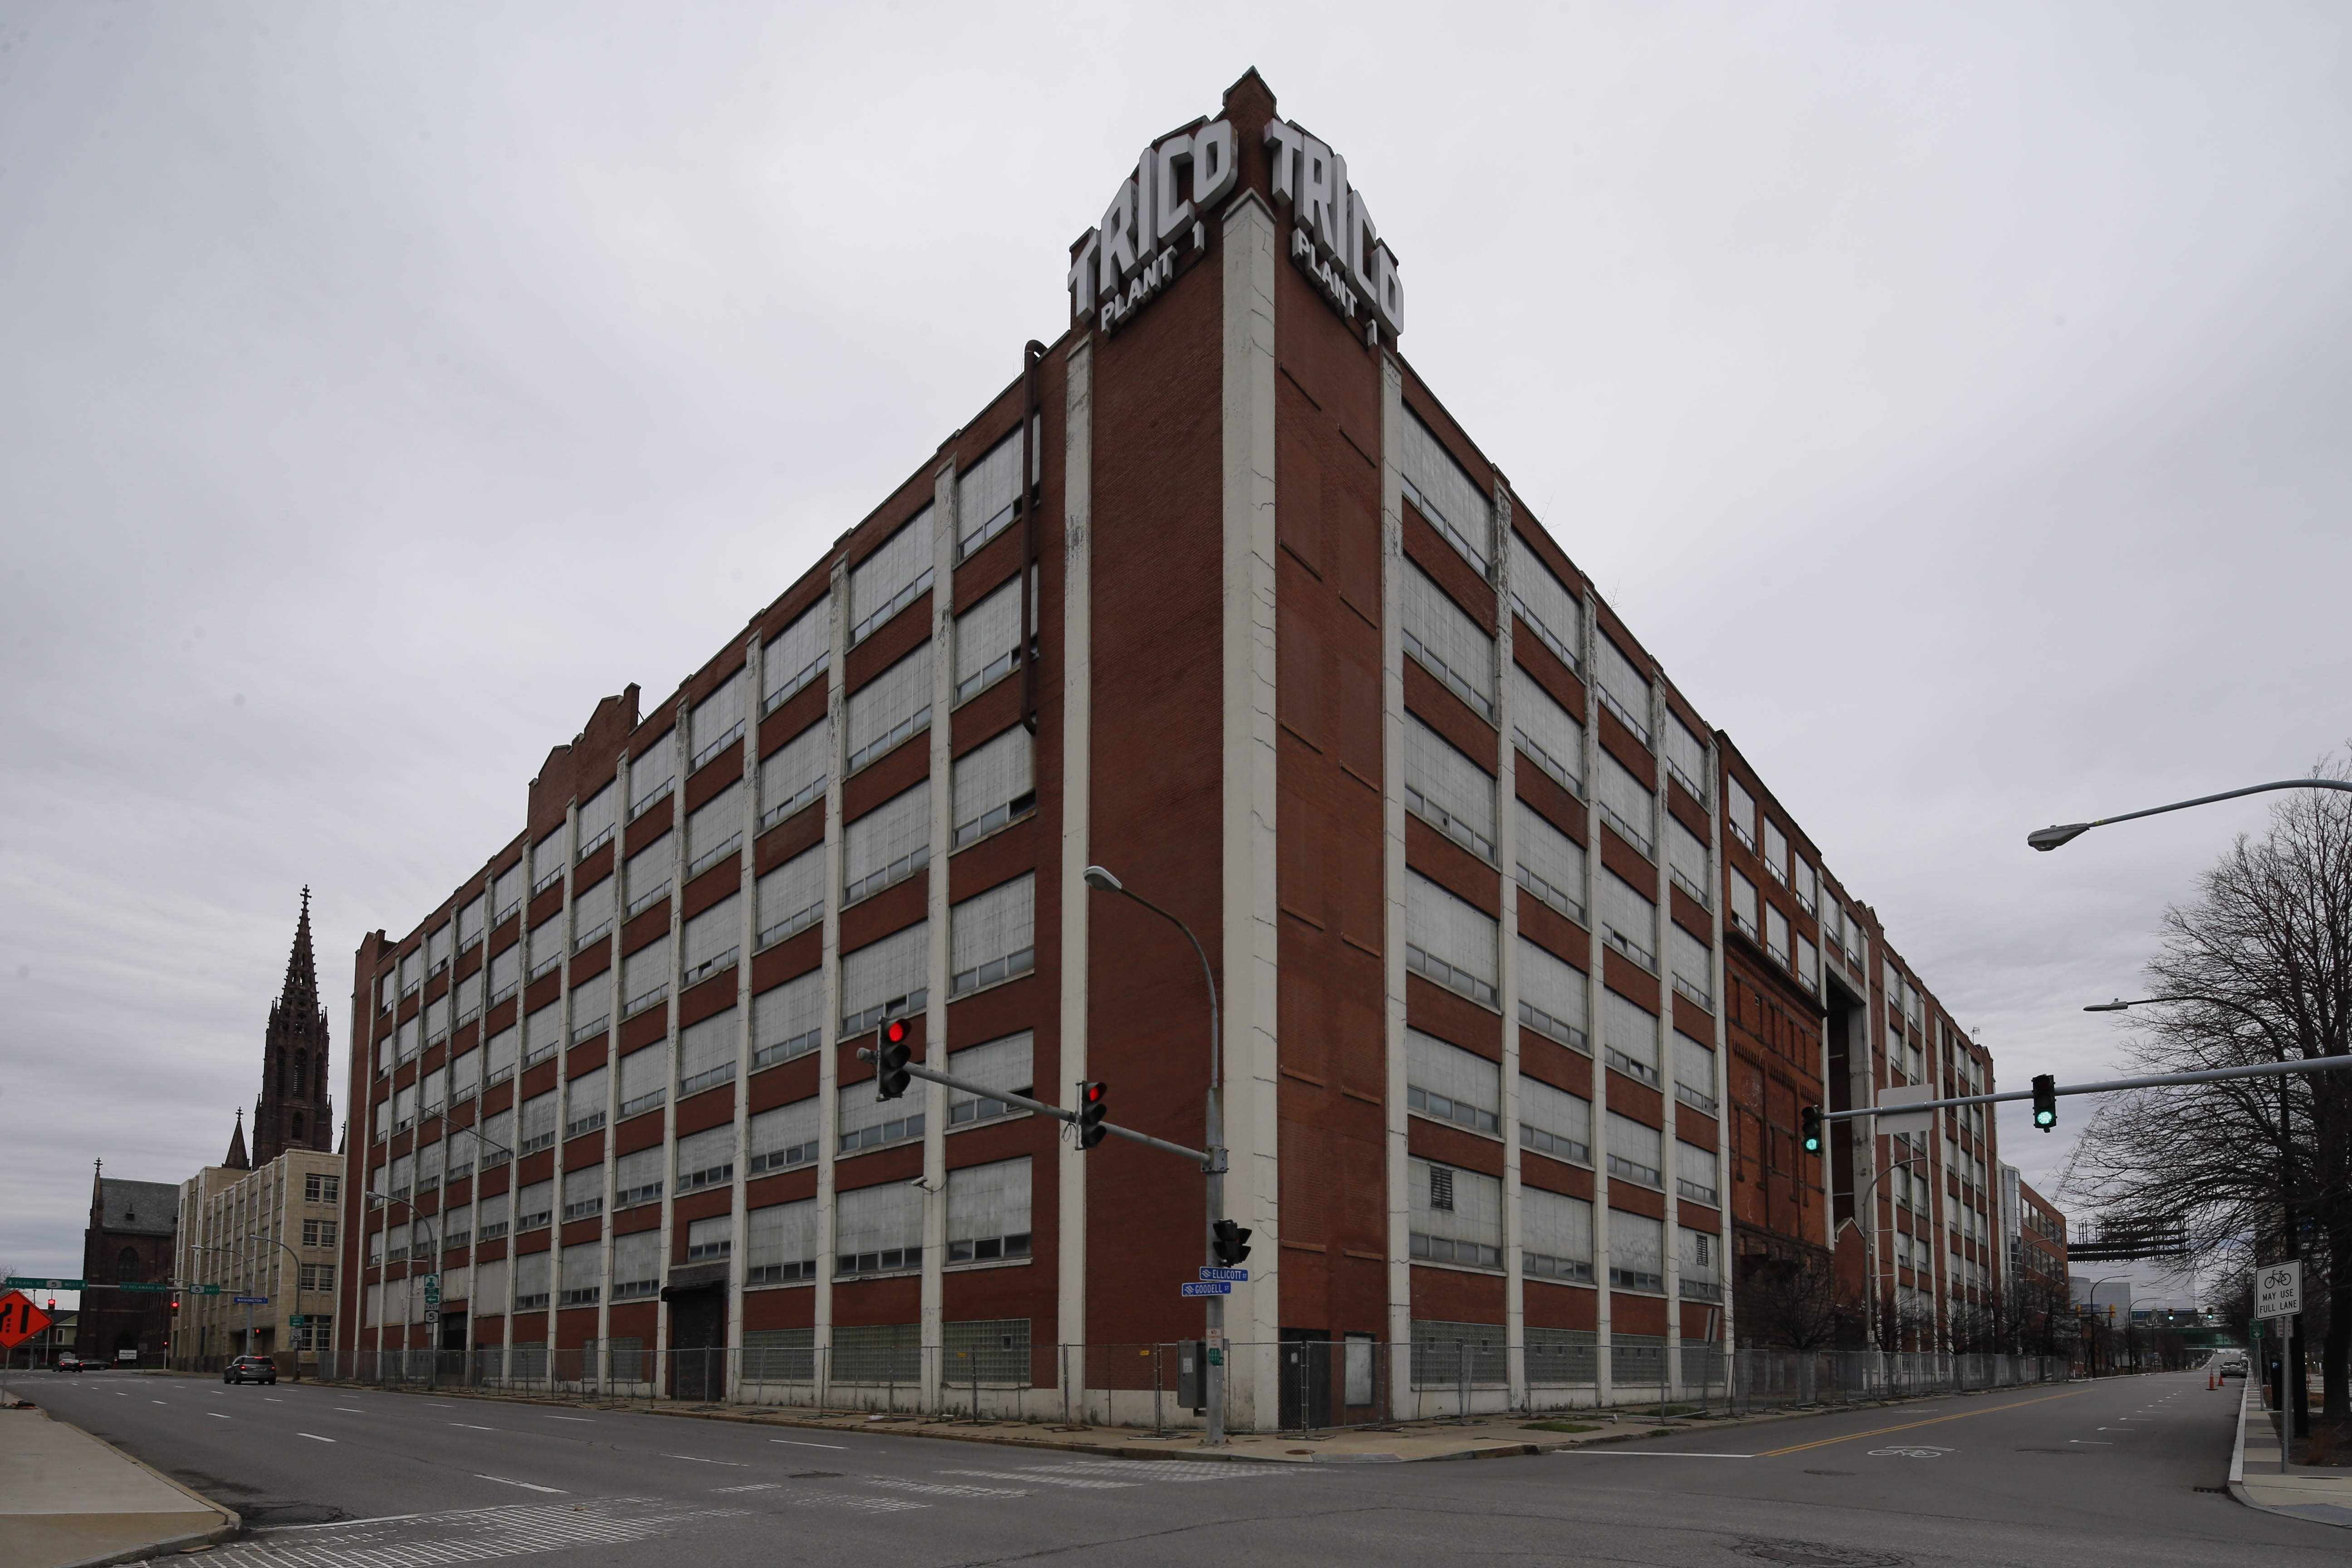 Krog Corp.'s proposal to convert the former Trico building on the corner of Ellicott and Goodell streets into a hotel and apartments is being held up by parking issues related to the project.